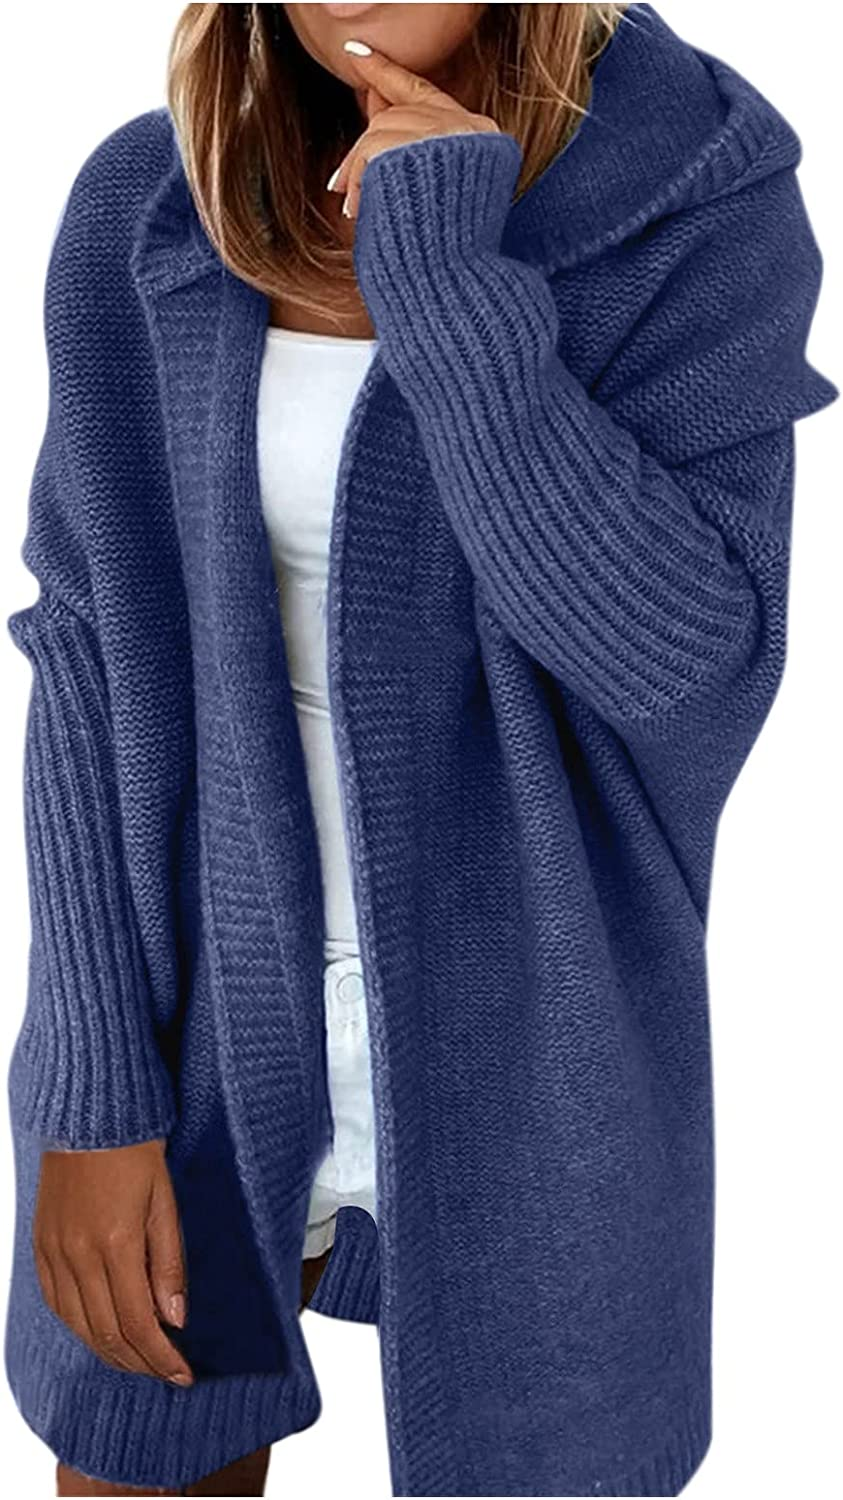 Cardigans Sweaters for Women's Quantity limited Popcorn Oversized shopping Cardigan Hooded